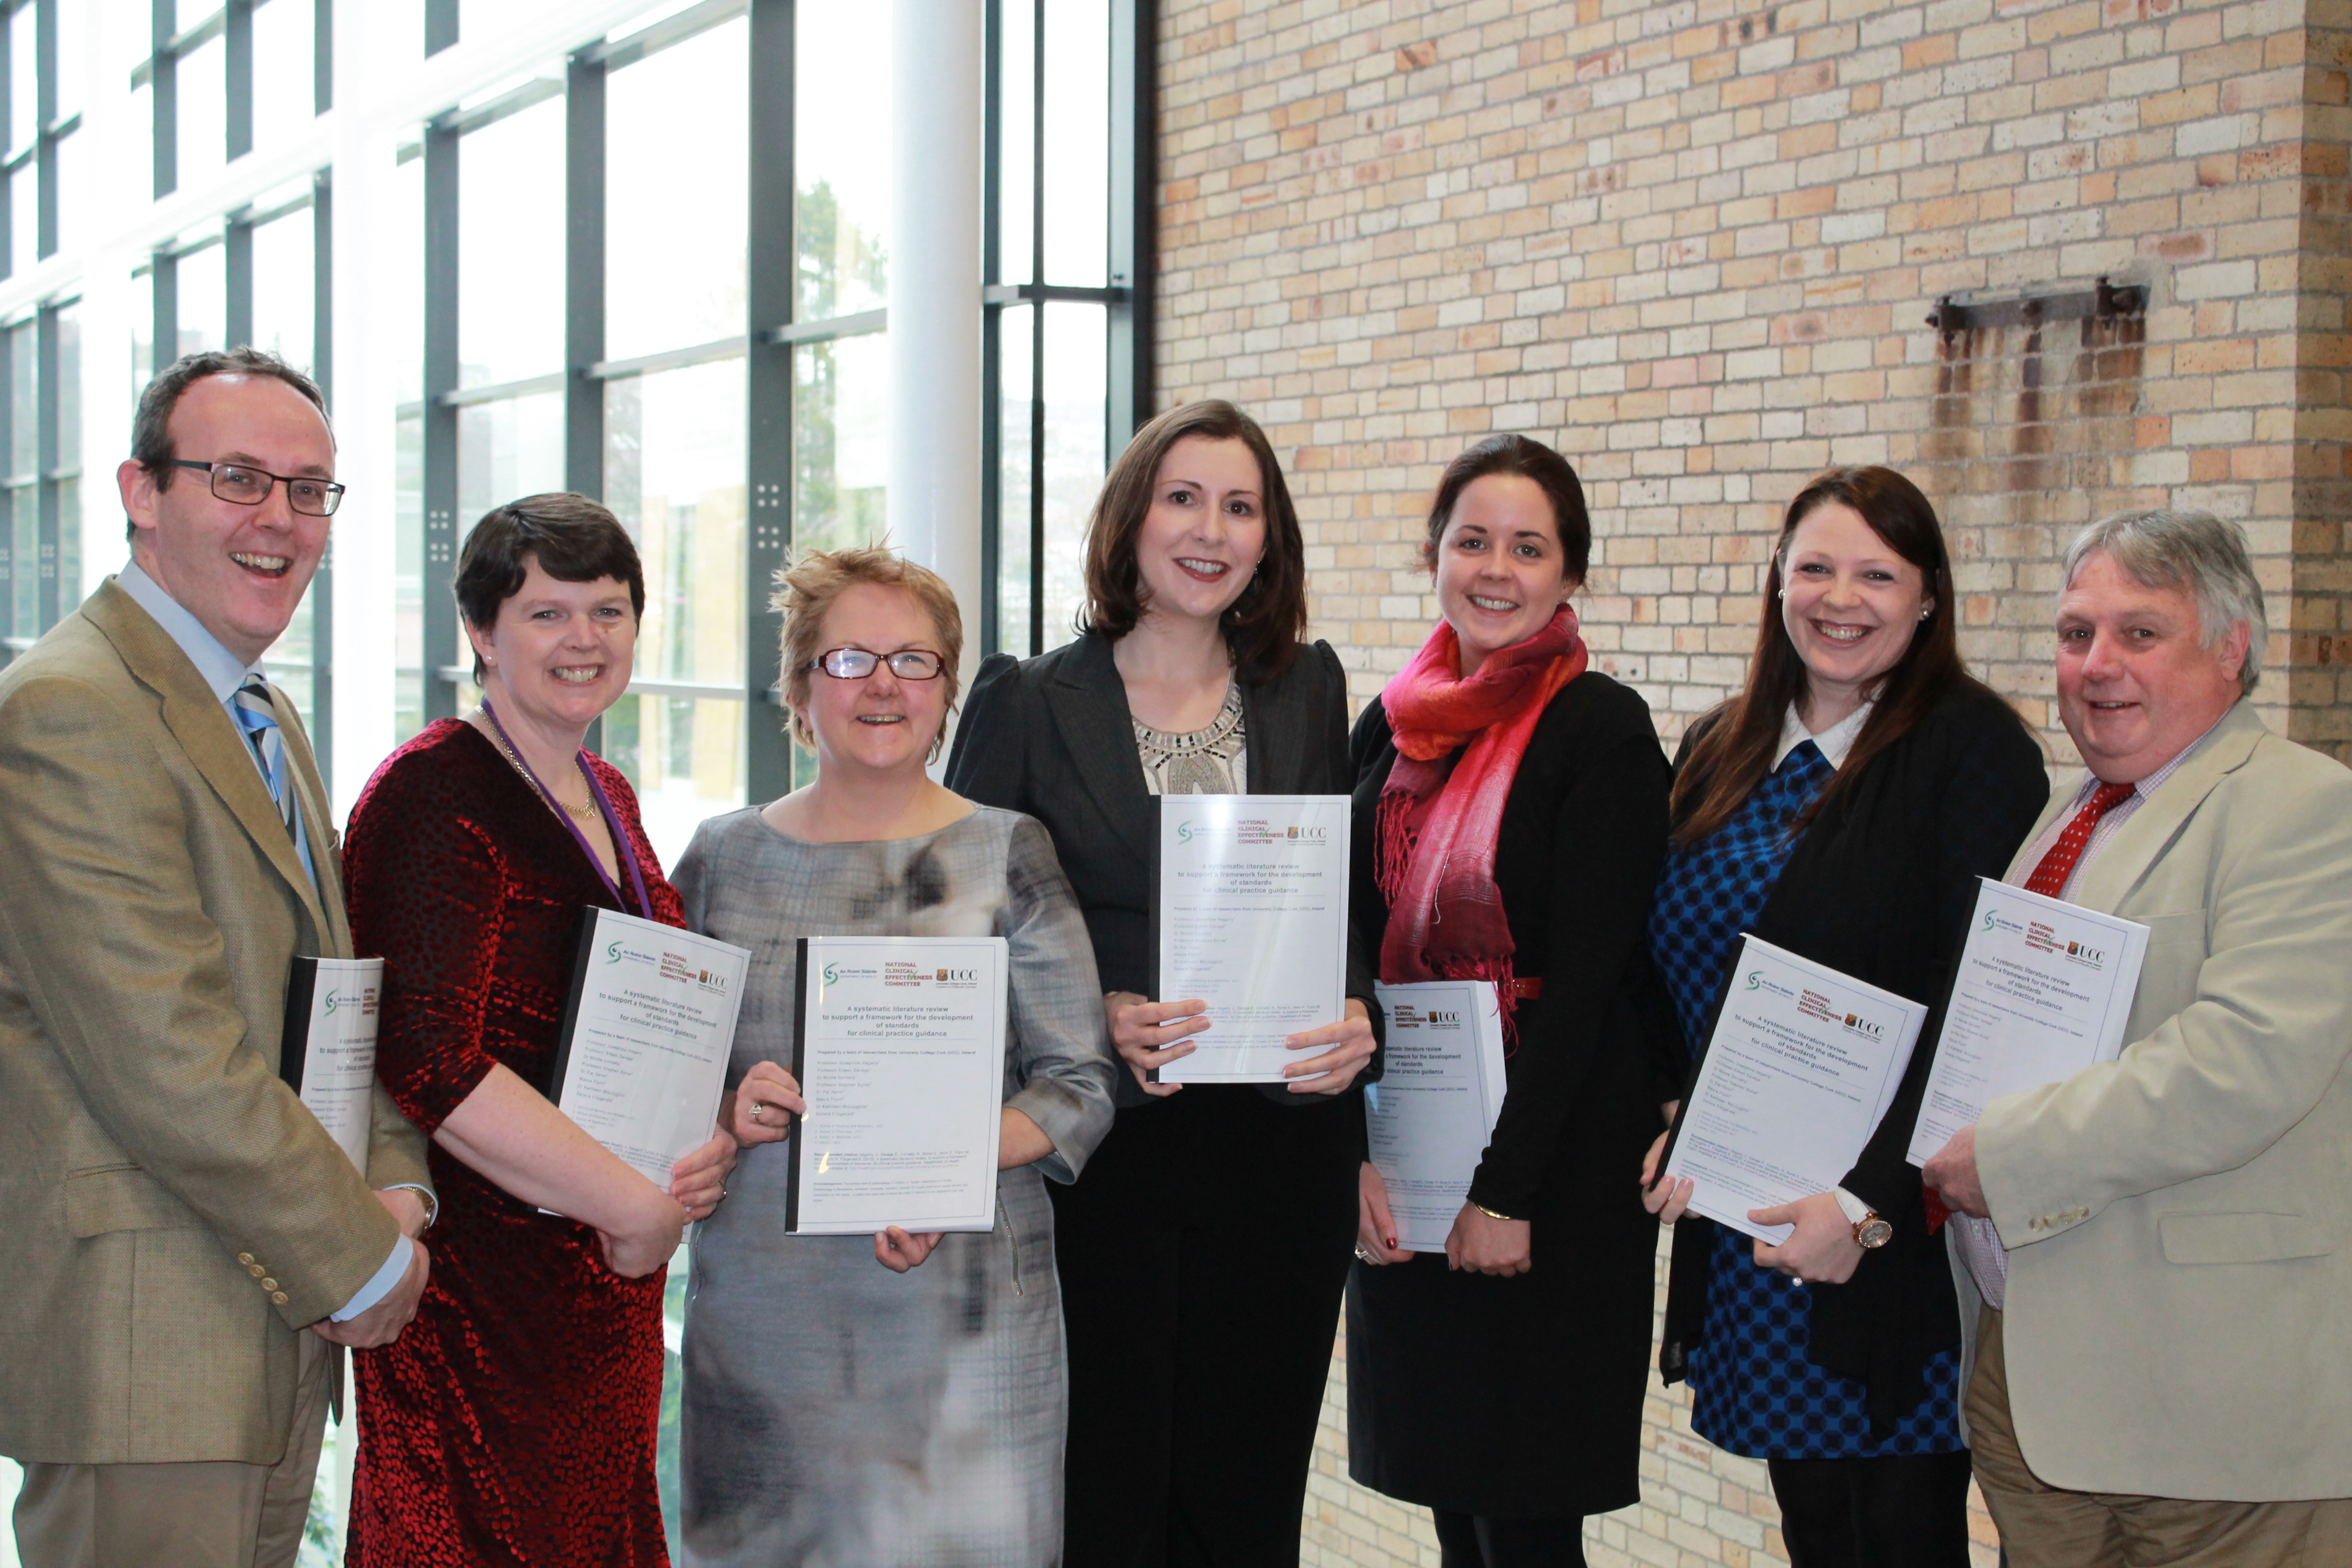 UCC interdisciplinary research team conducts Irish Department of Health commissioned project